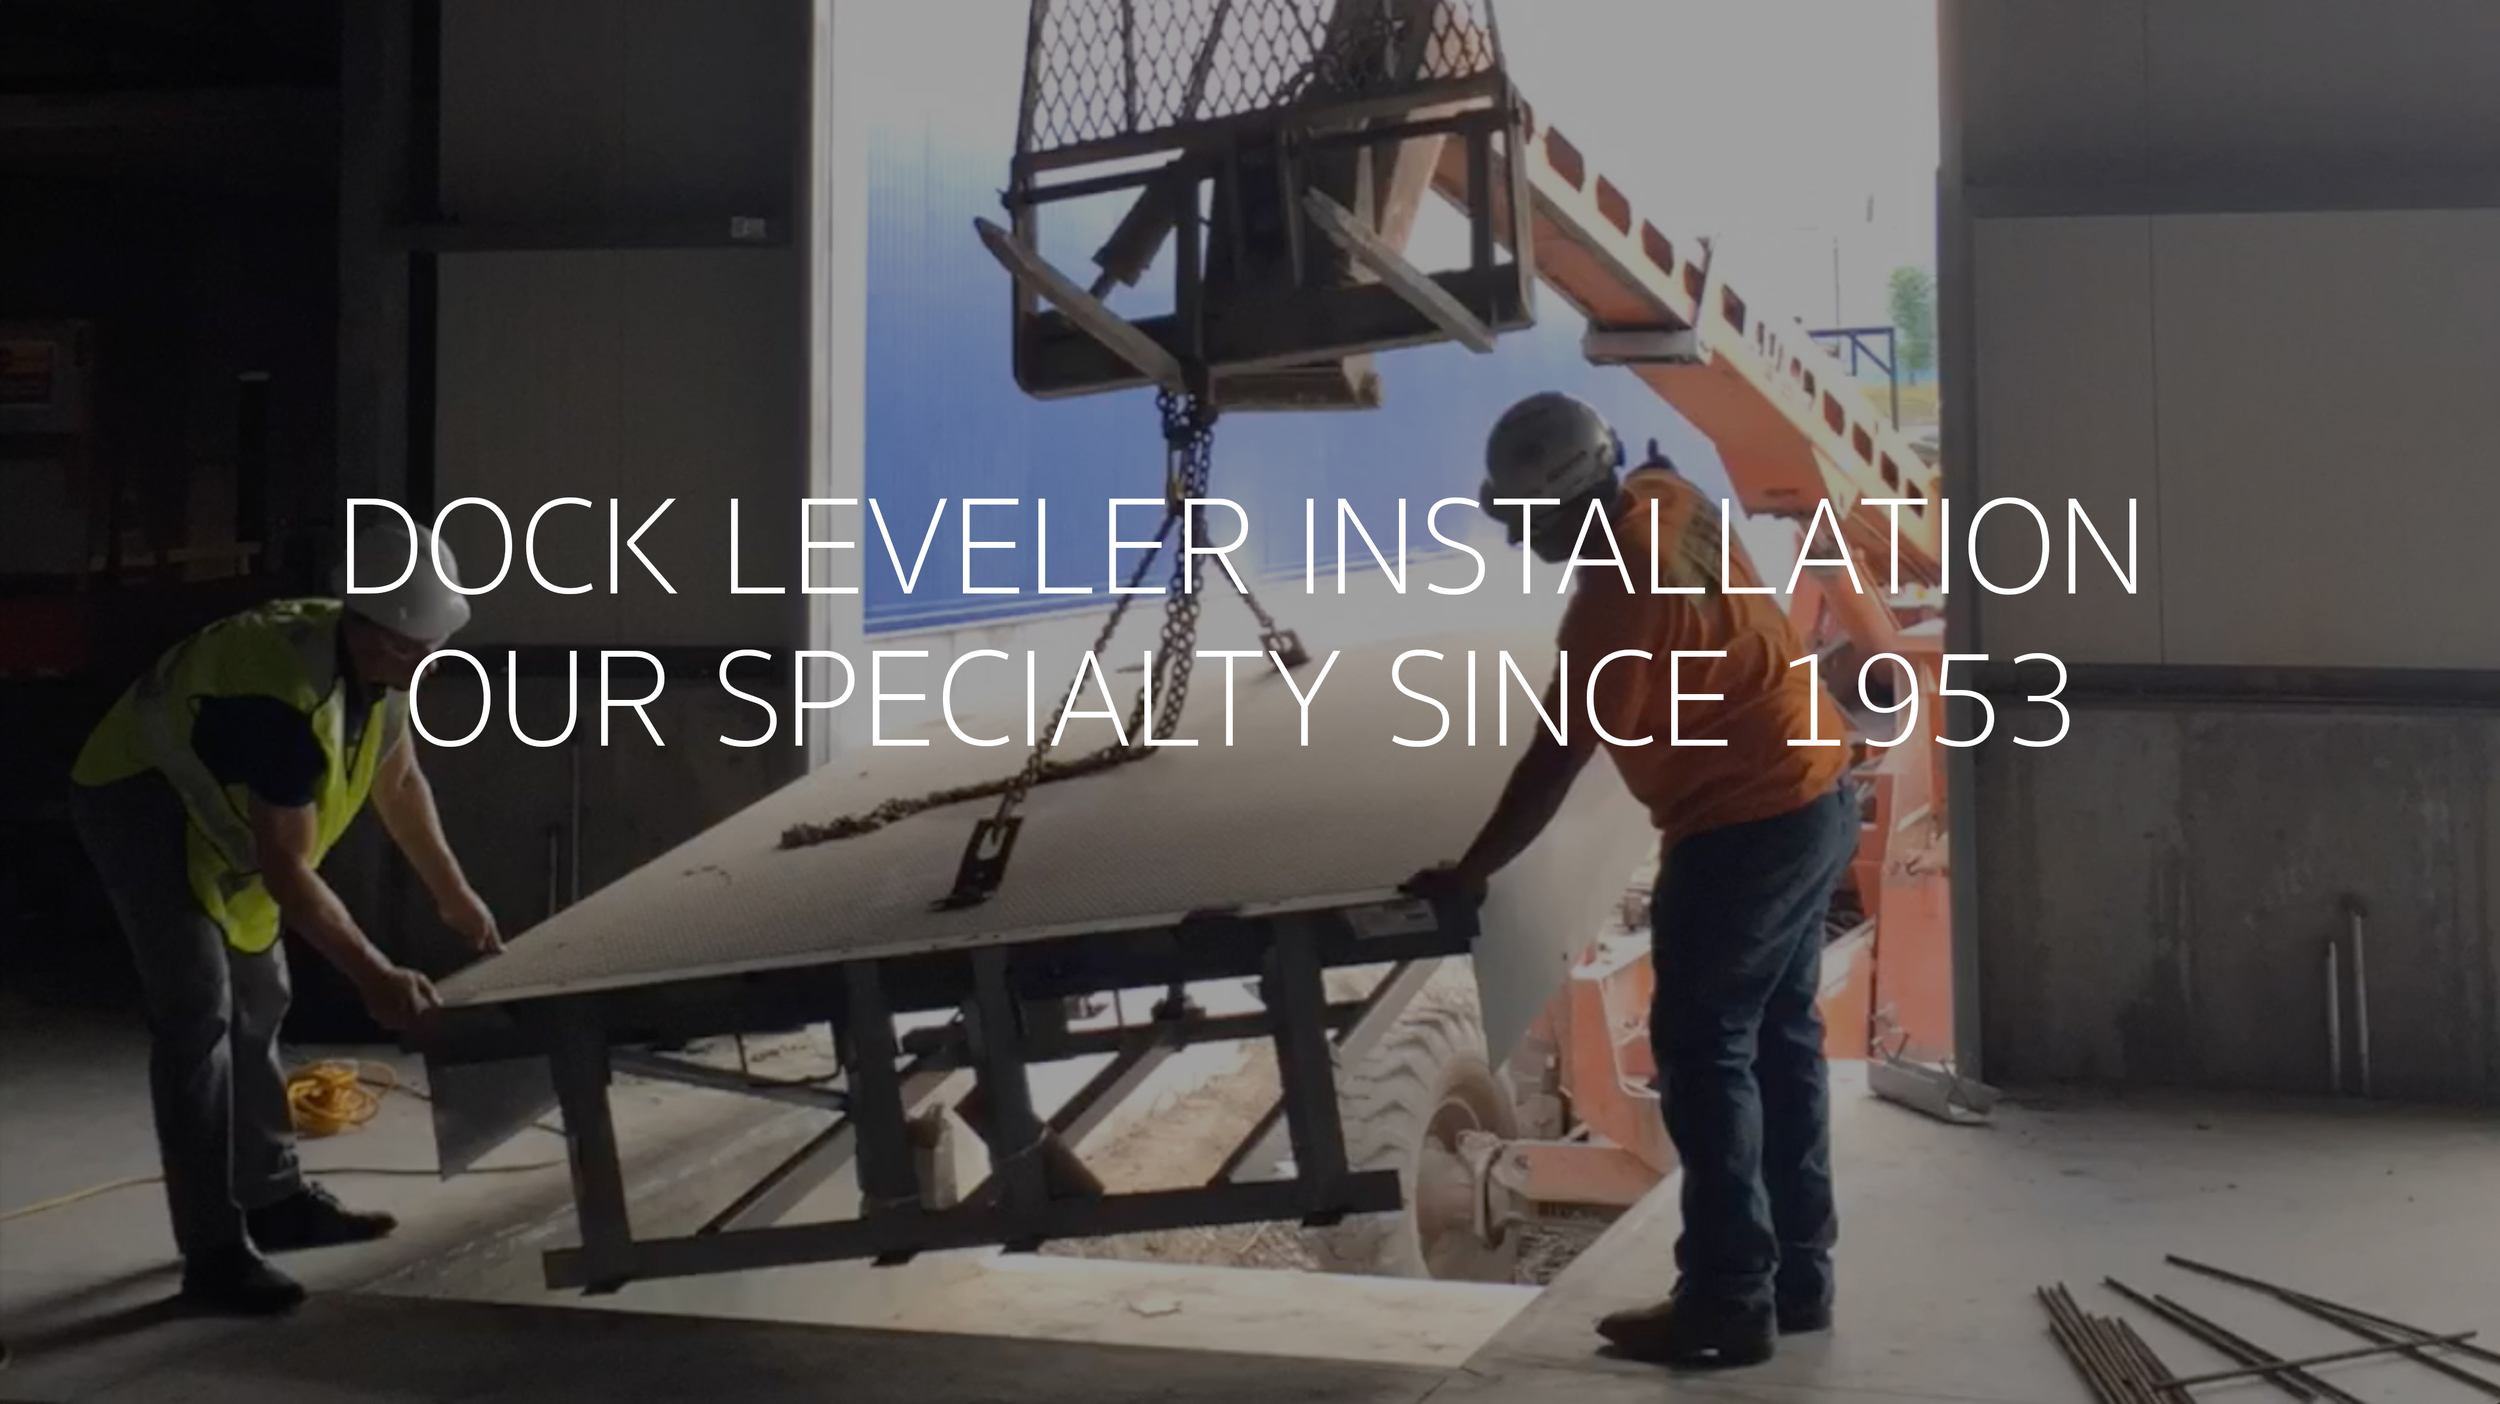 Dock Equipment St Louis Missouri Dock Leveler Repair Installation Service Rice Equipment